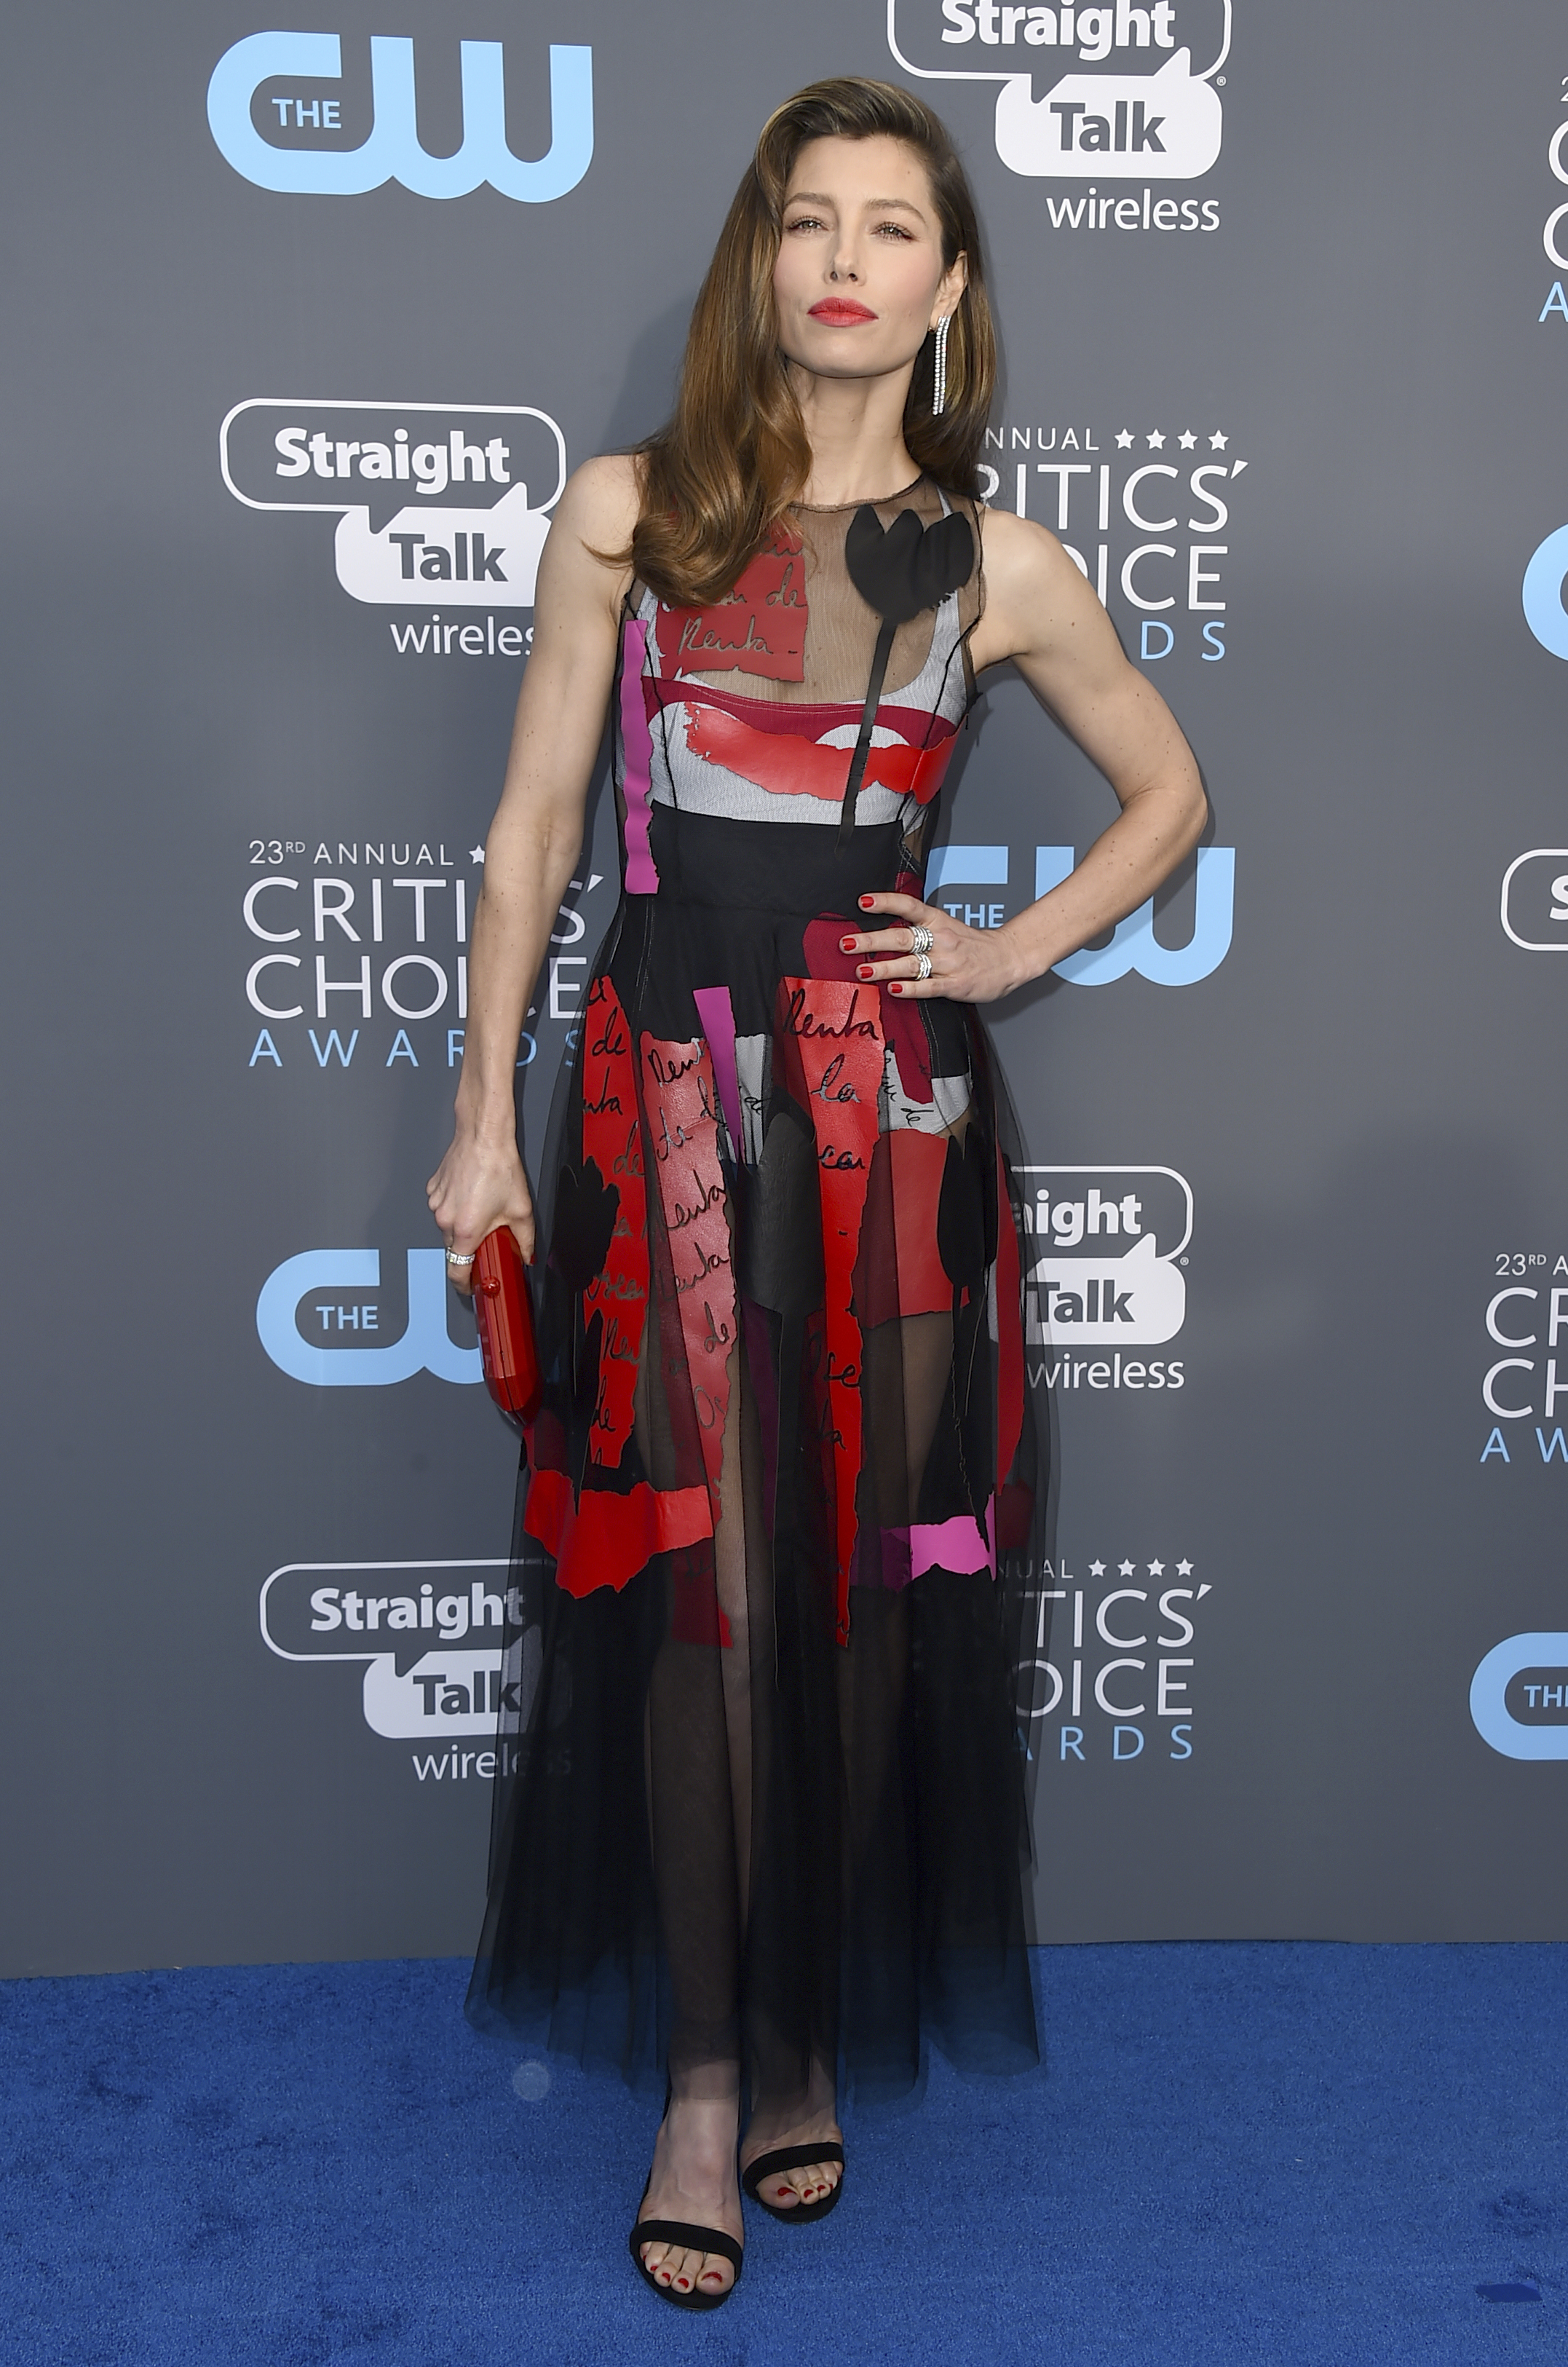 <div class='meta'><div class='origin-logo' data-origin='AP'></div><span class='caption-text' data-credit='Jordan Strauss/Invision/AP'>Jessica Biel arrives at the 23rd annual Critics' Choice Awards at the Barker Hangar on Thursday, Jan. 11, 2018, in Santa Monica, Calif.</span></div>